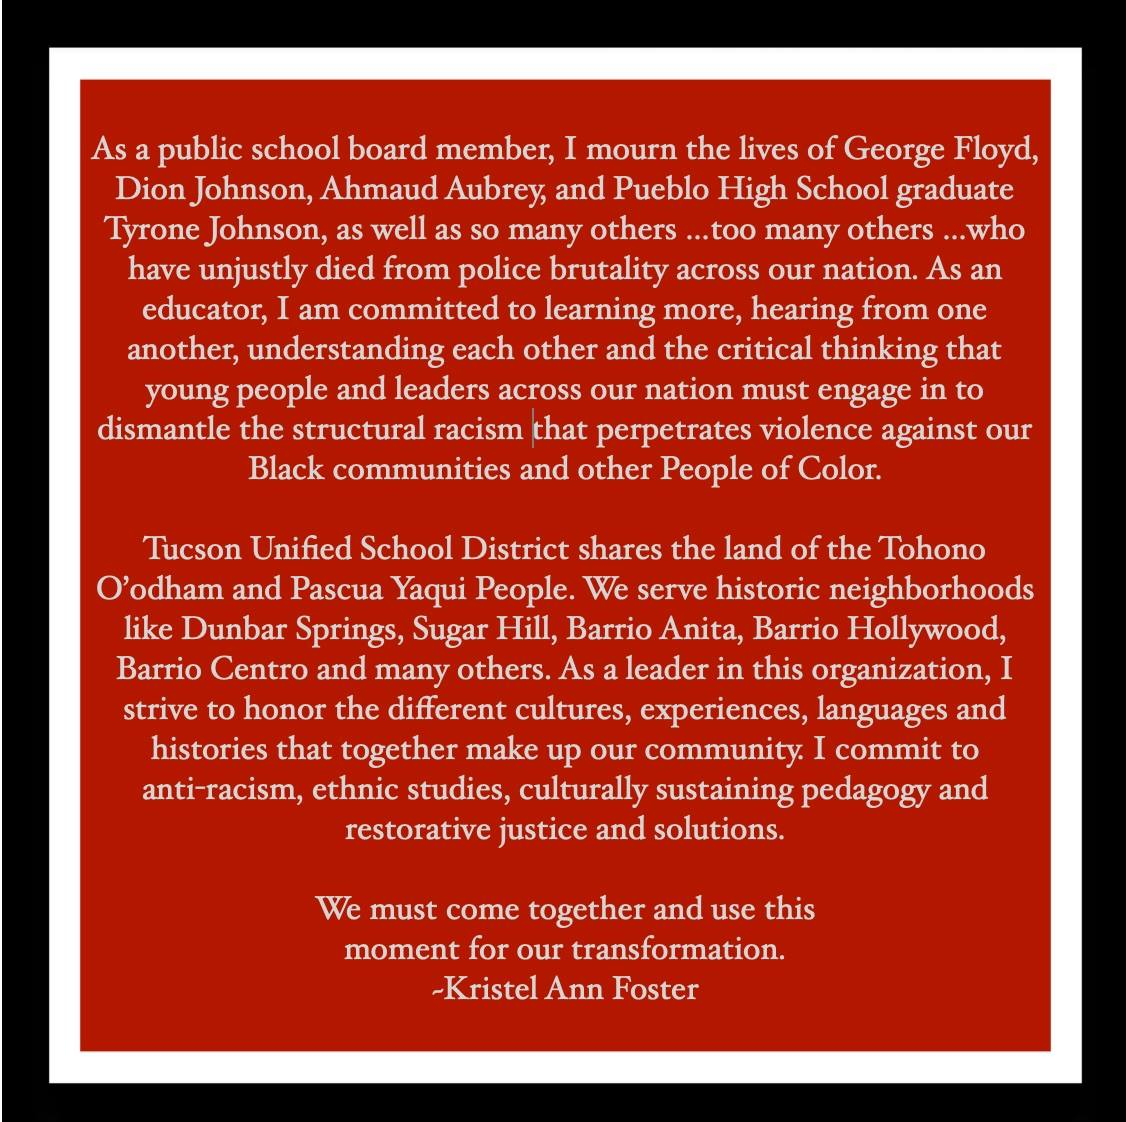 Arizona schools, students take action after protests for justice and reform TUSD-Kristel-Foster-Stmt